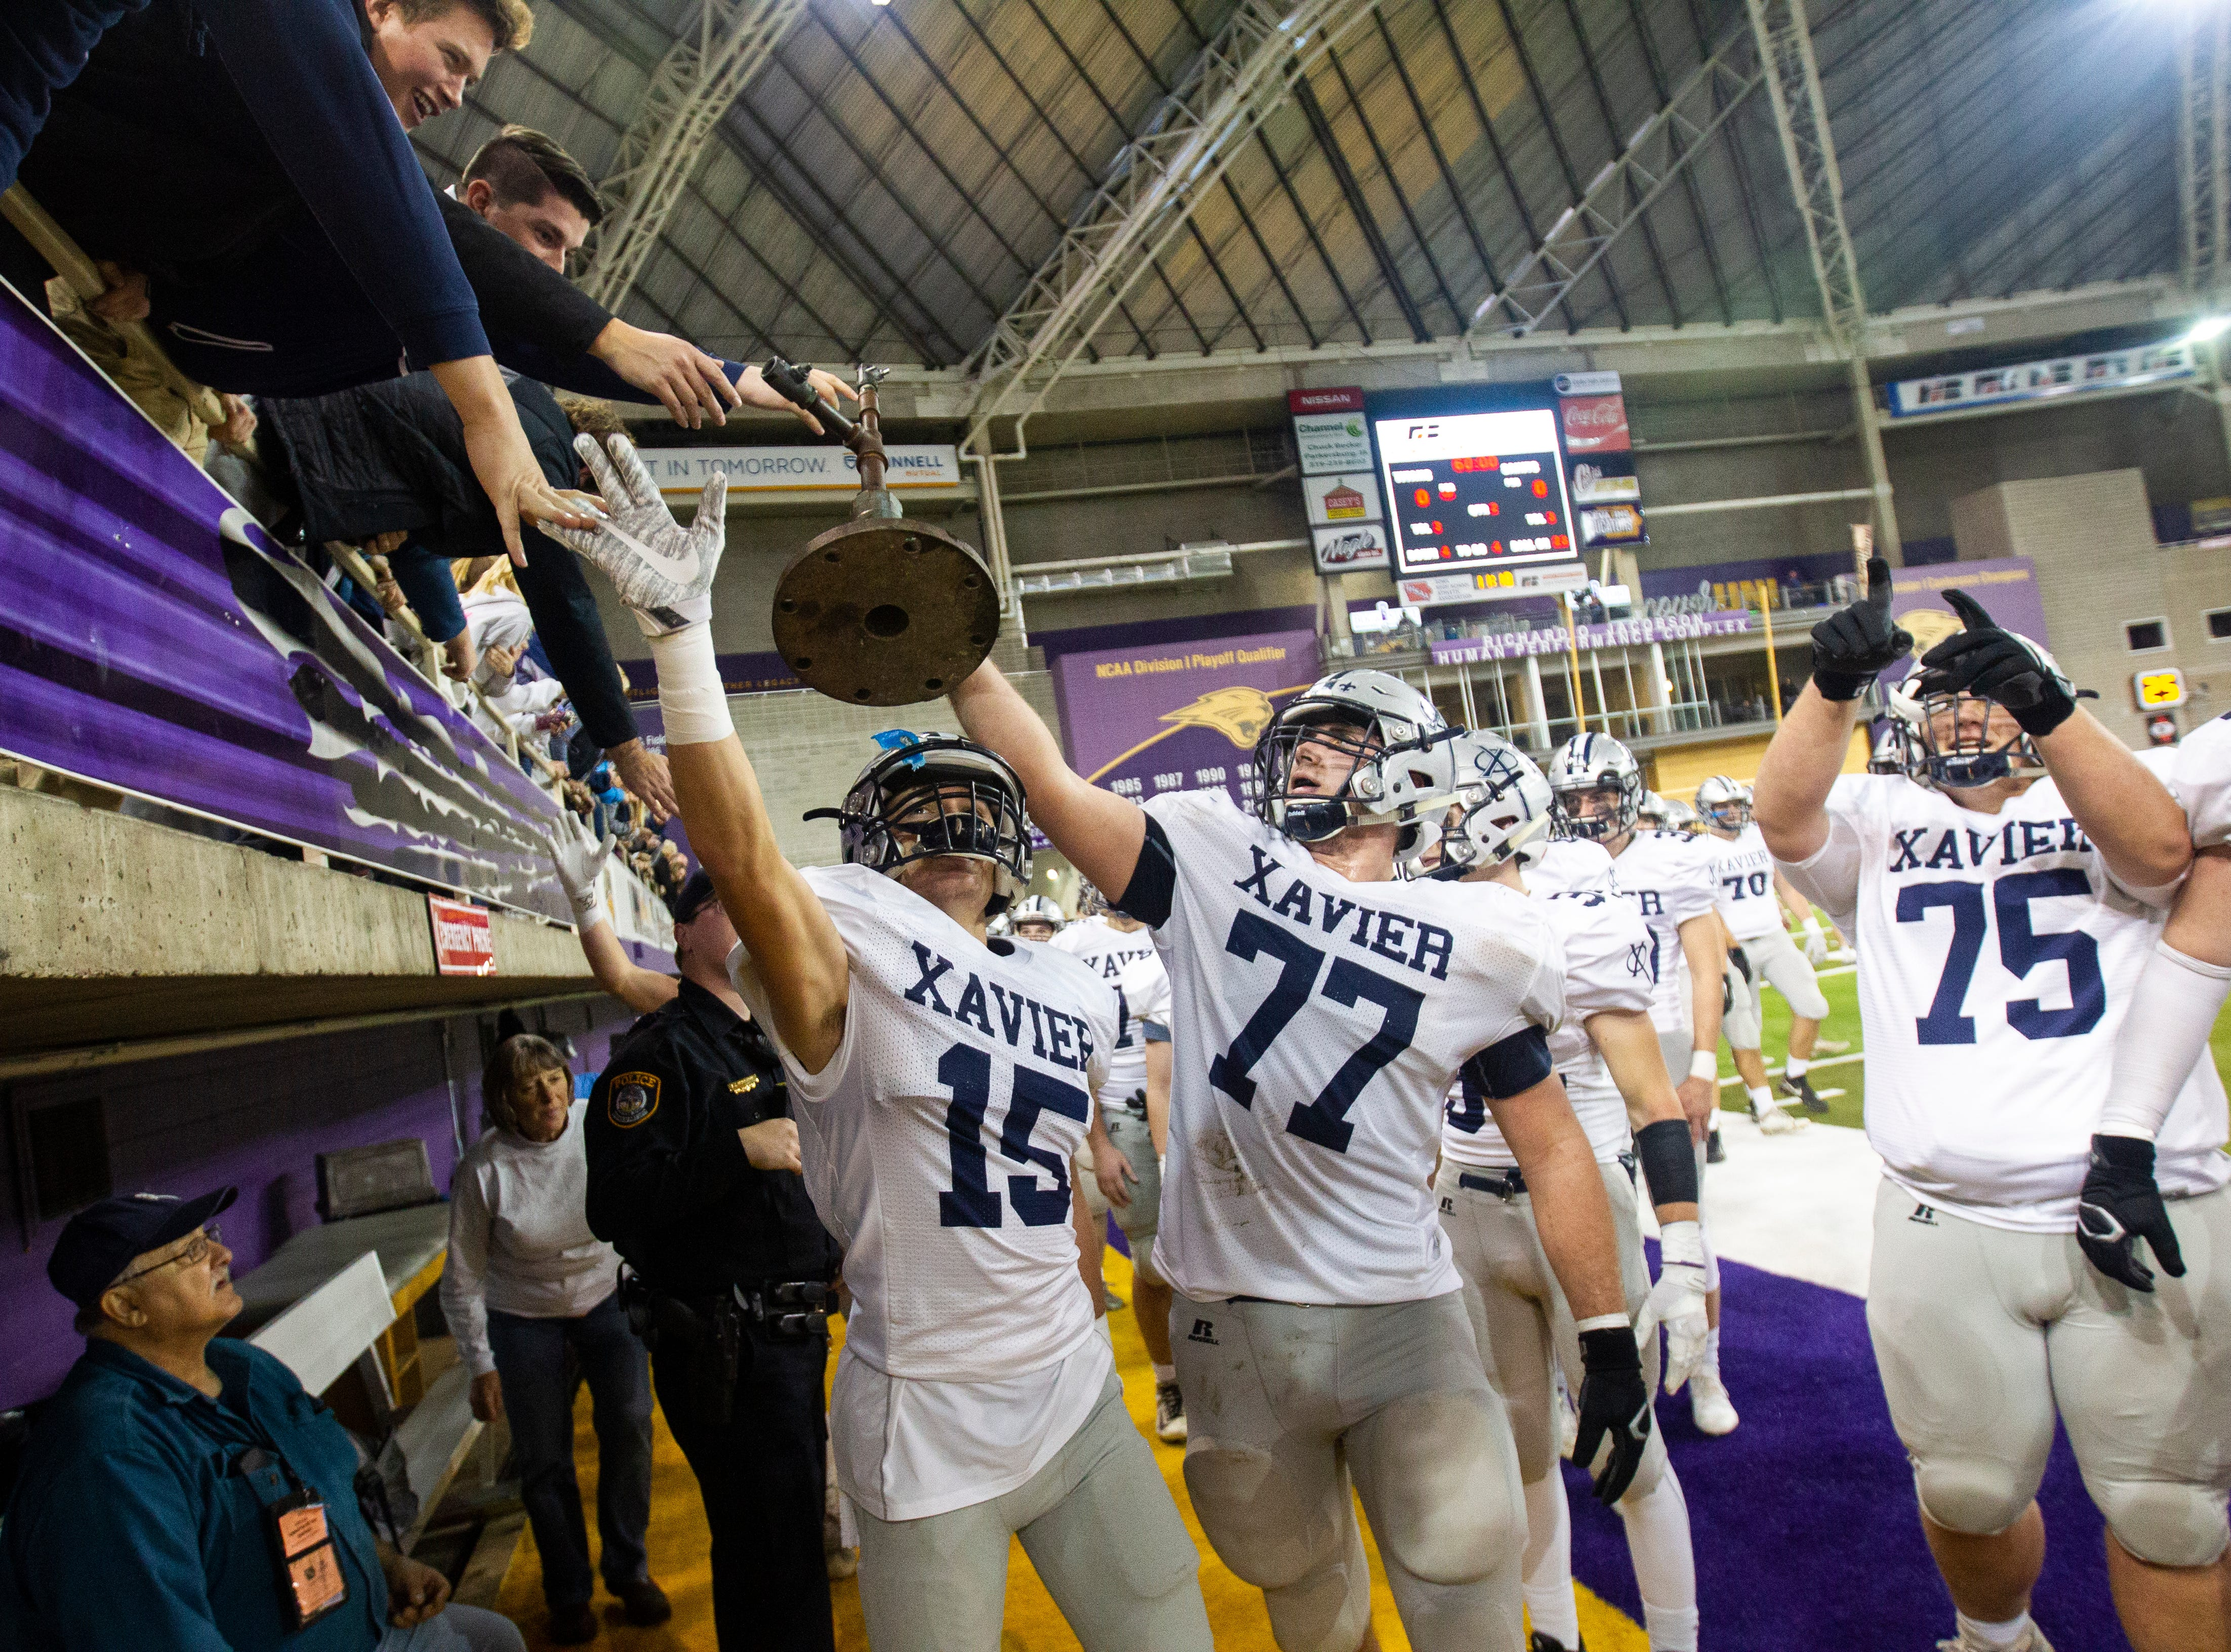 Cedar Rapids Xavier's Derrick Skala (15) and Kyle Krezek (77) celebrate with fans after a Class 3A semi finals on Thursday, Nov. 8, 2018, at the UNI-Dome in Cedar Falls.